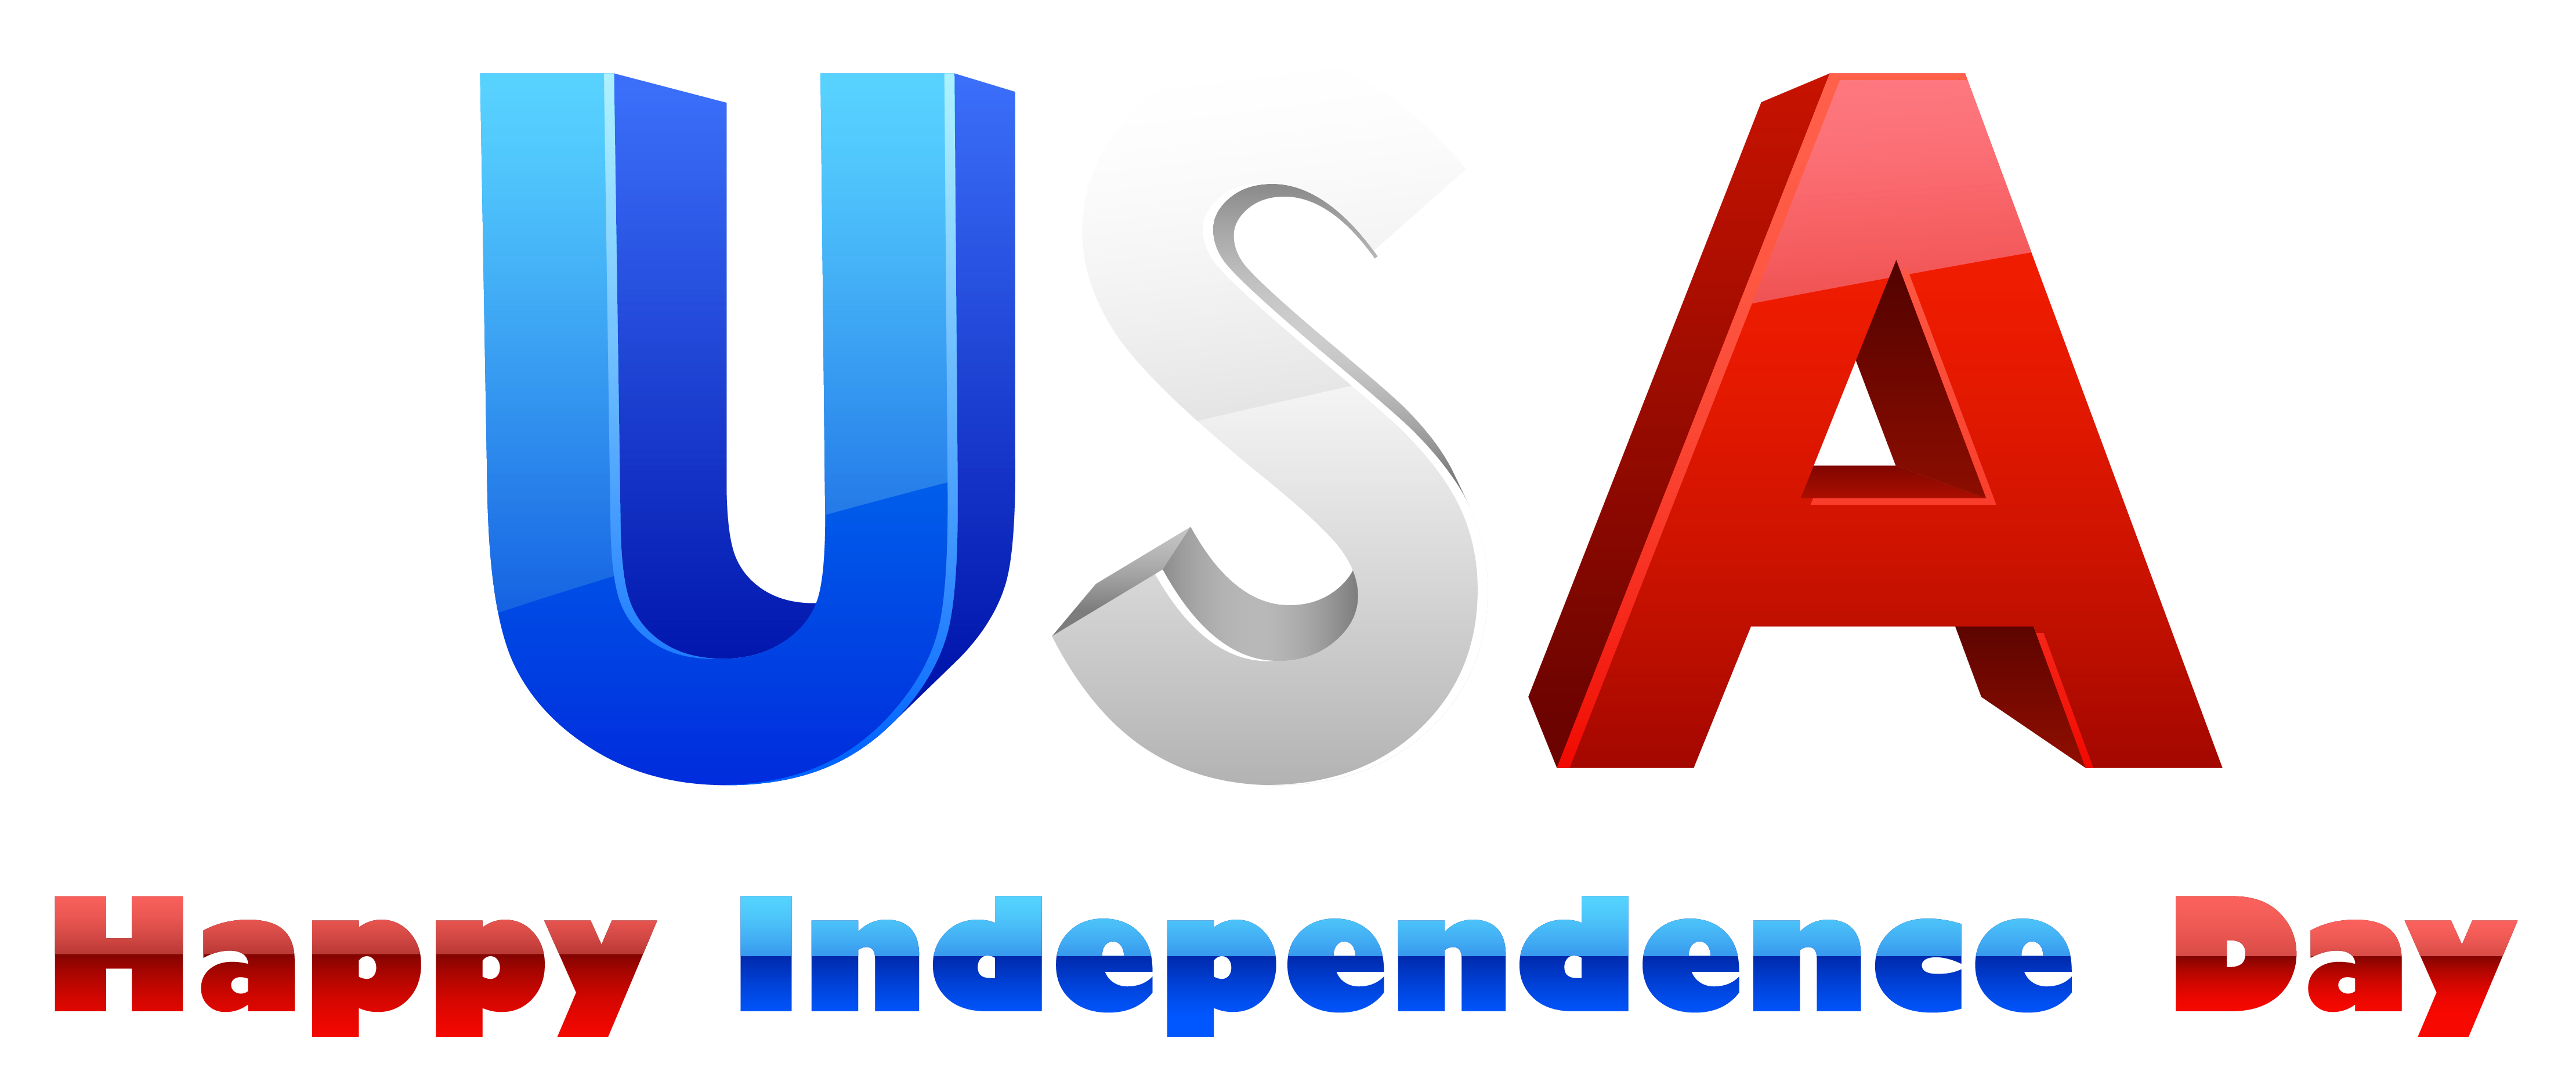 USA Happy Independence Day PN